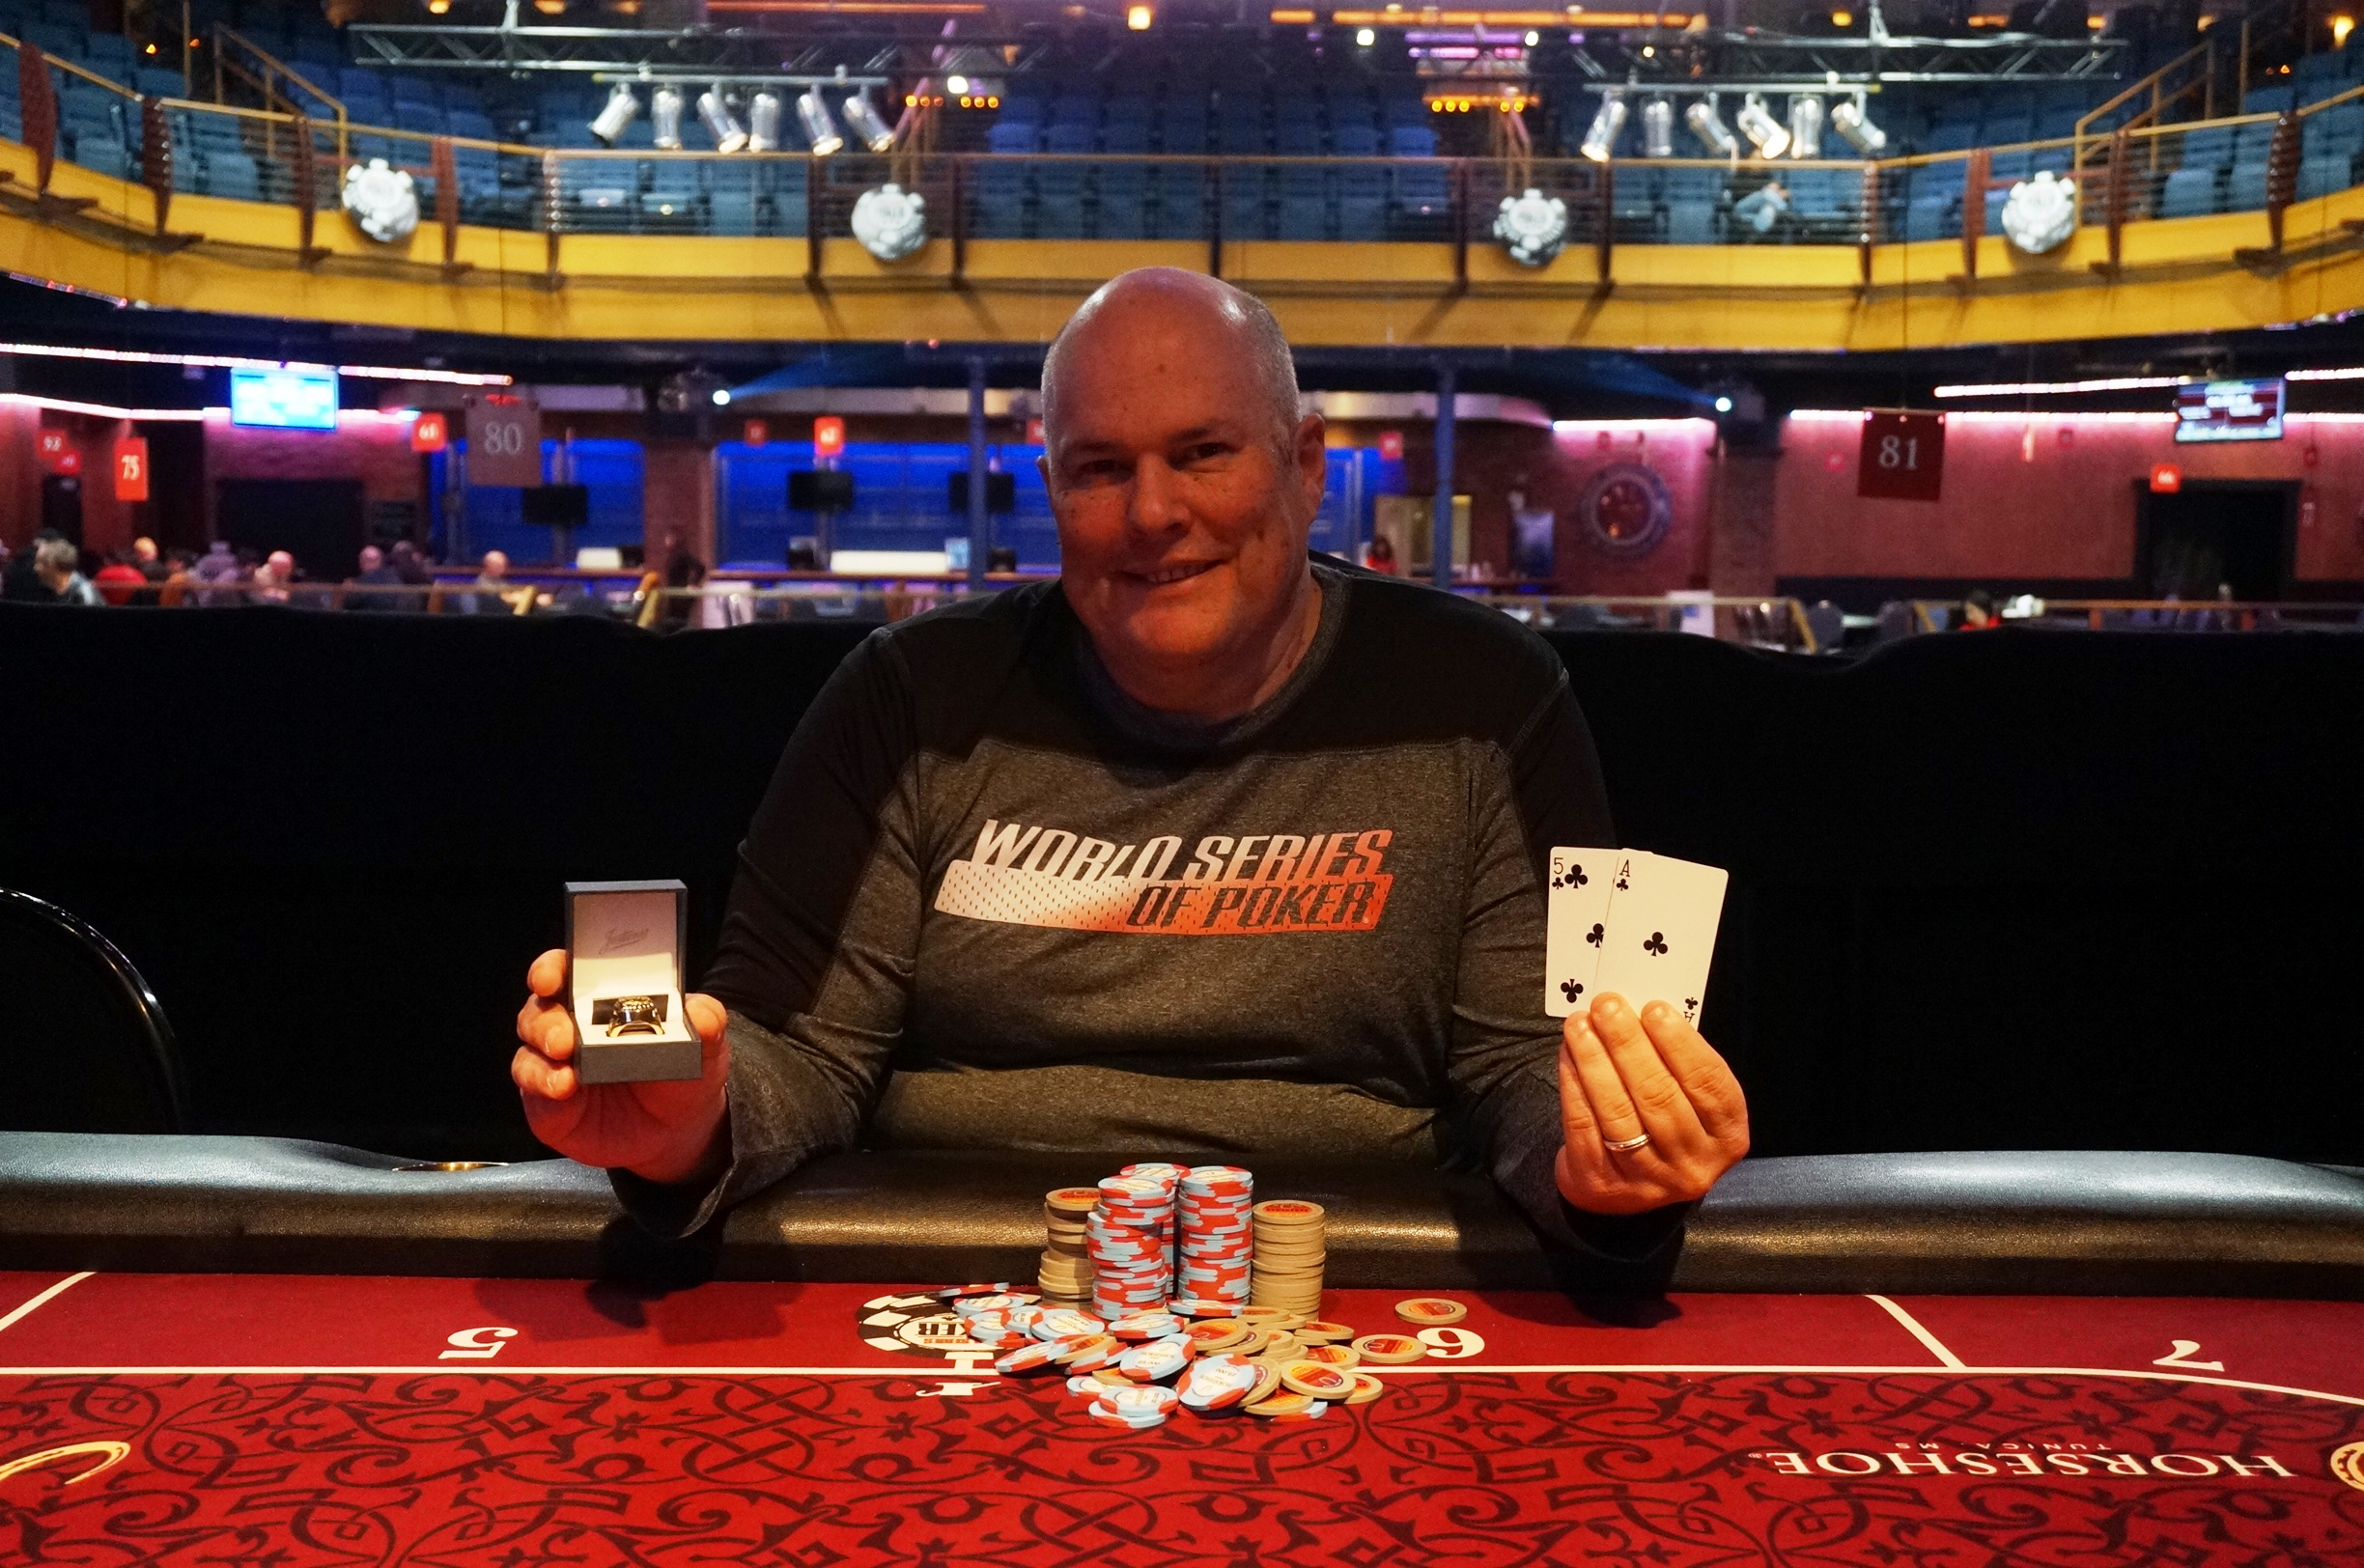 world series of poker 2019 results